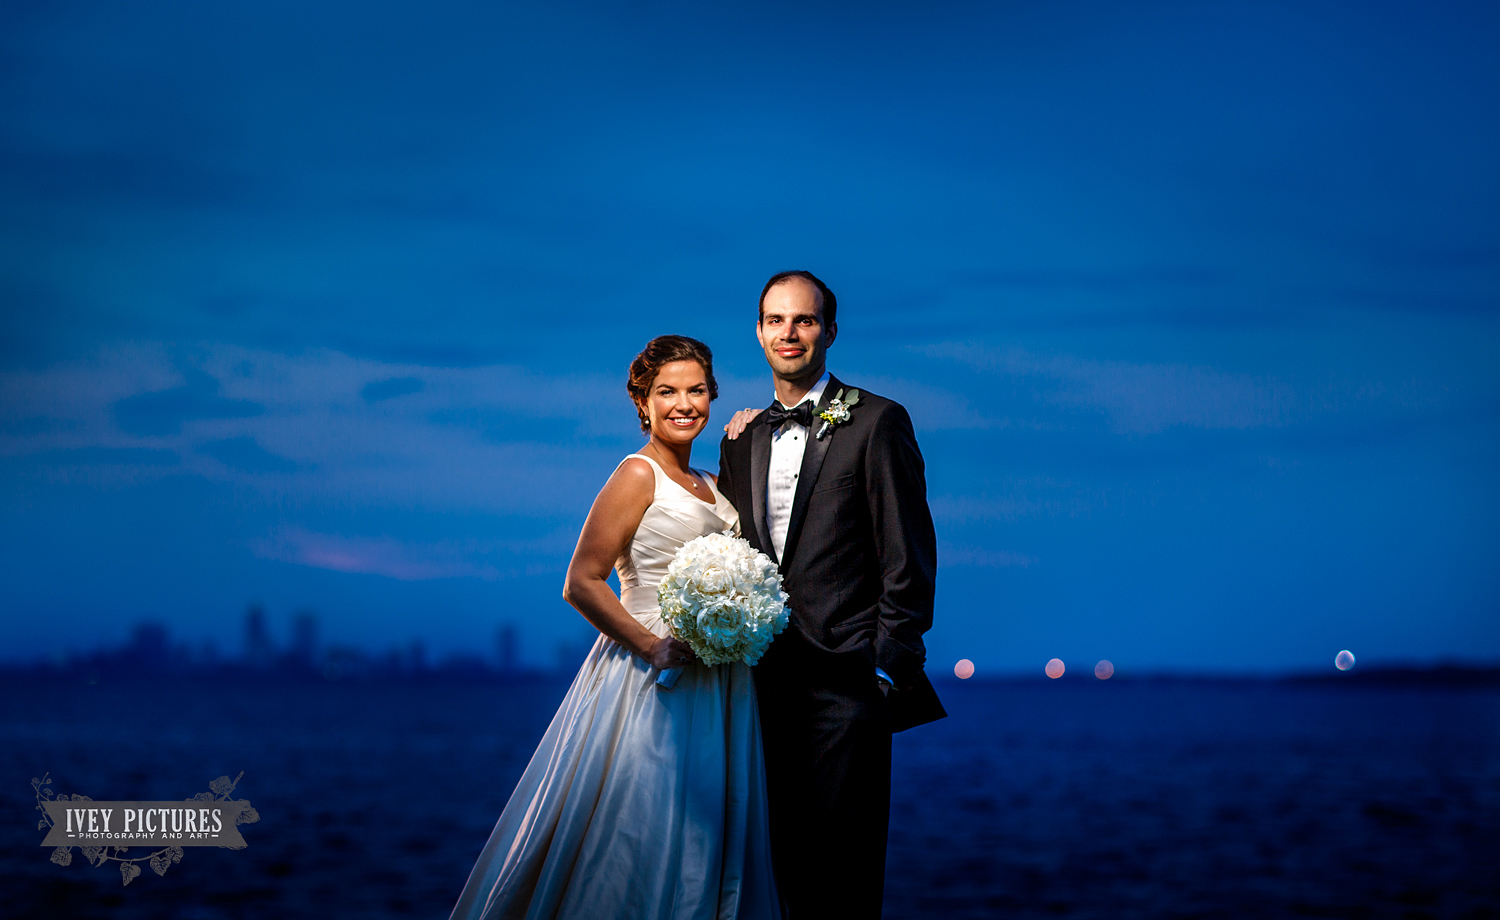 Ivey Pictures Jacksonville Wedding Photographers